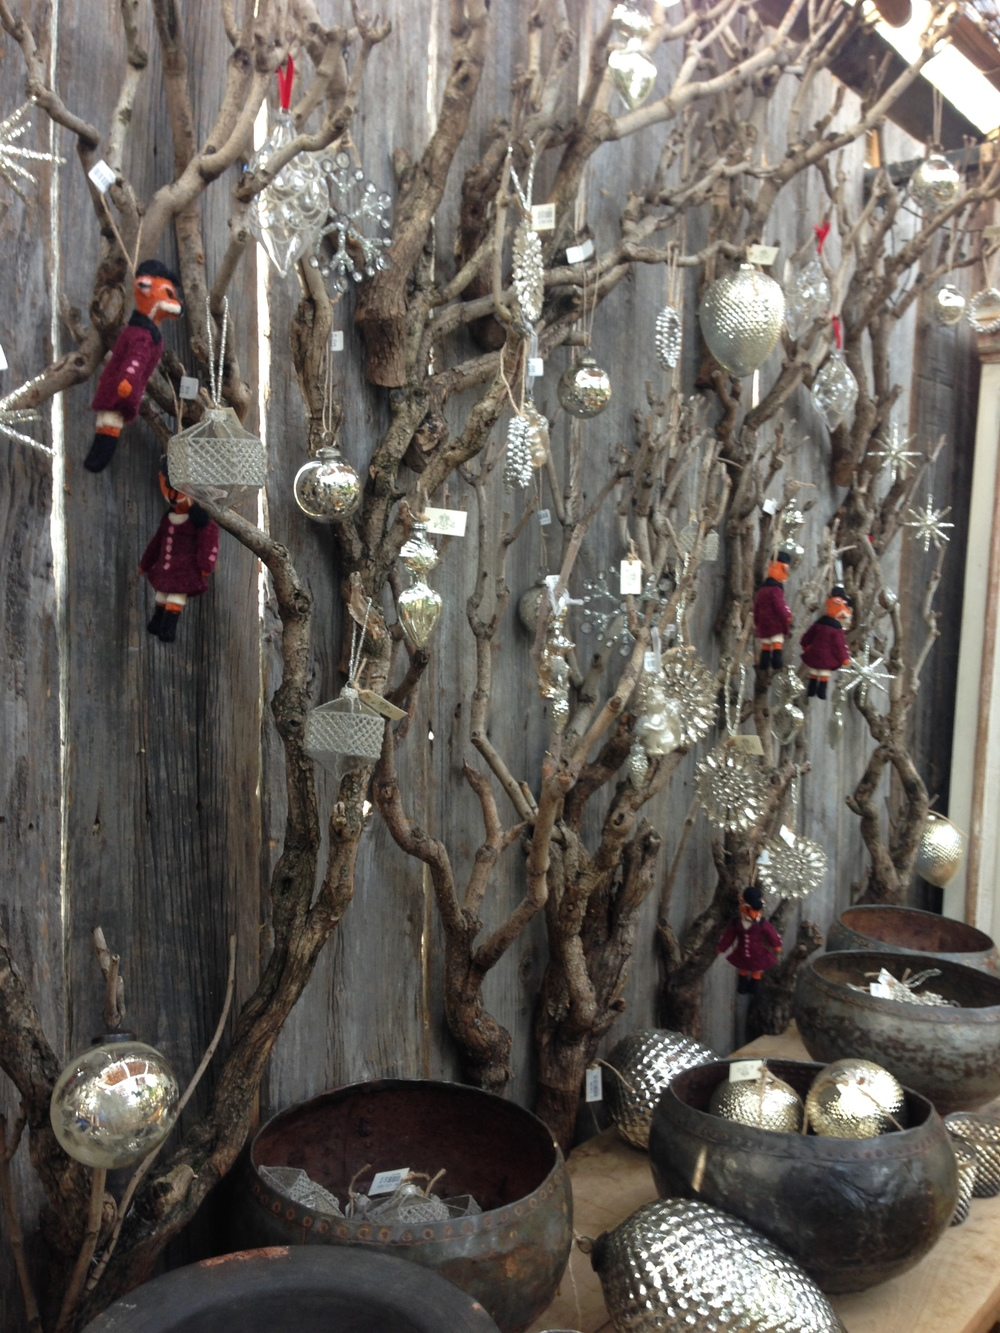 A wall of Christmas decorations